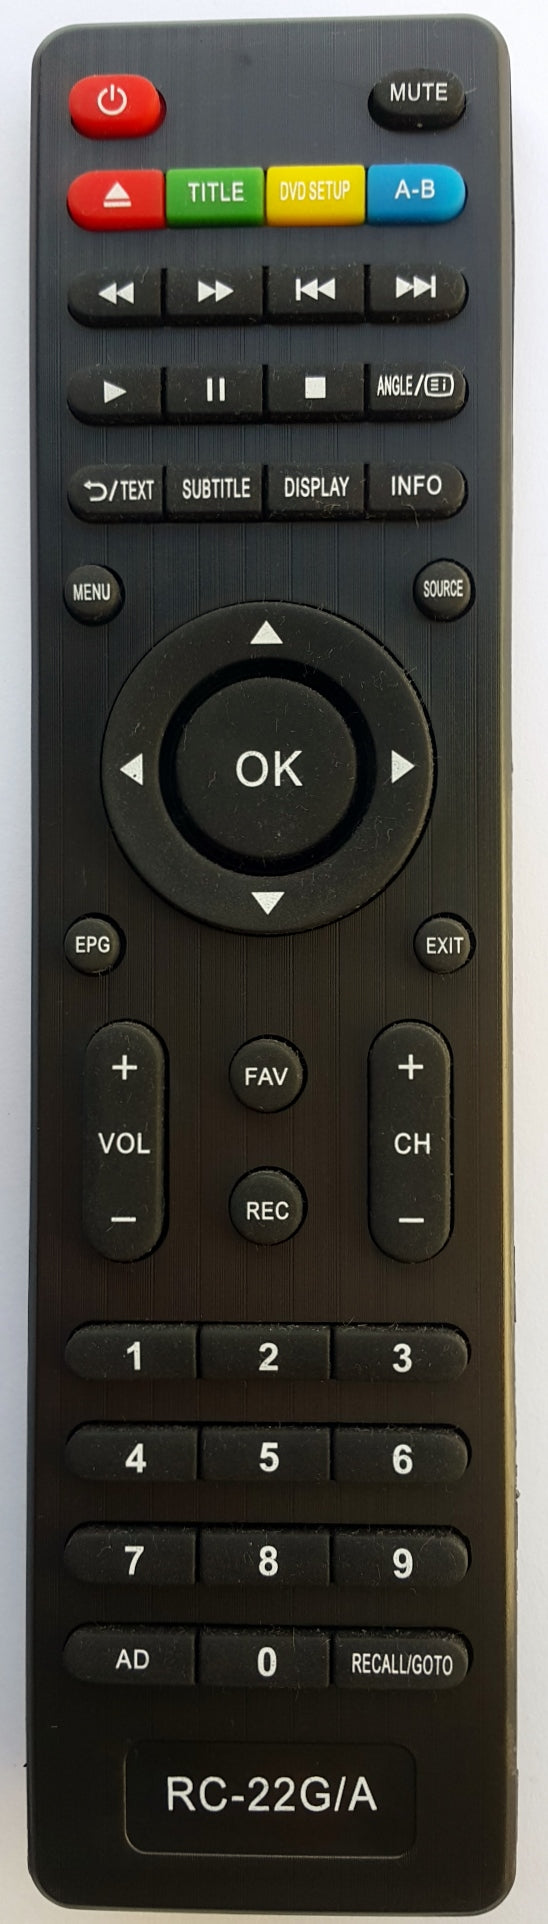 GRUNDIG REPLACEMENT REMOTE CONTROL -  G24FLED/A LCD TV - Remote Control Warehouse